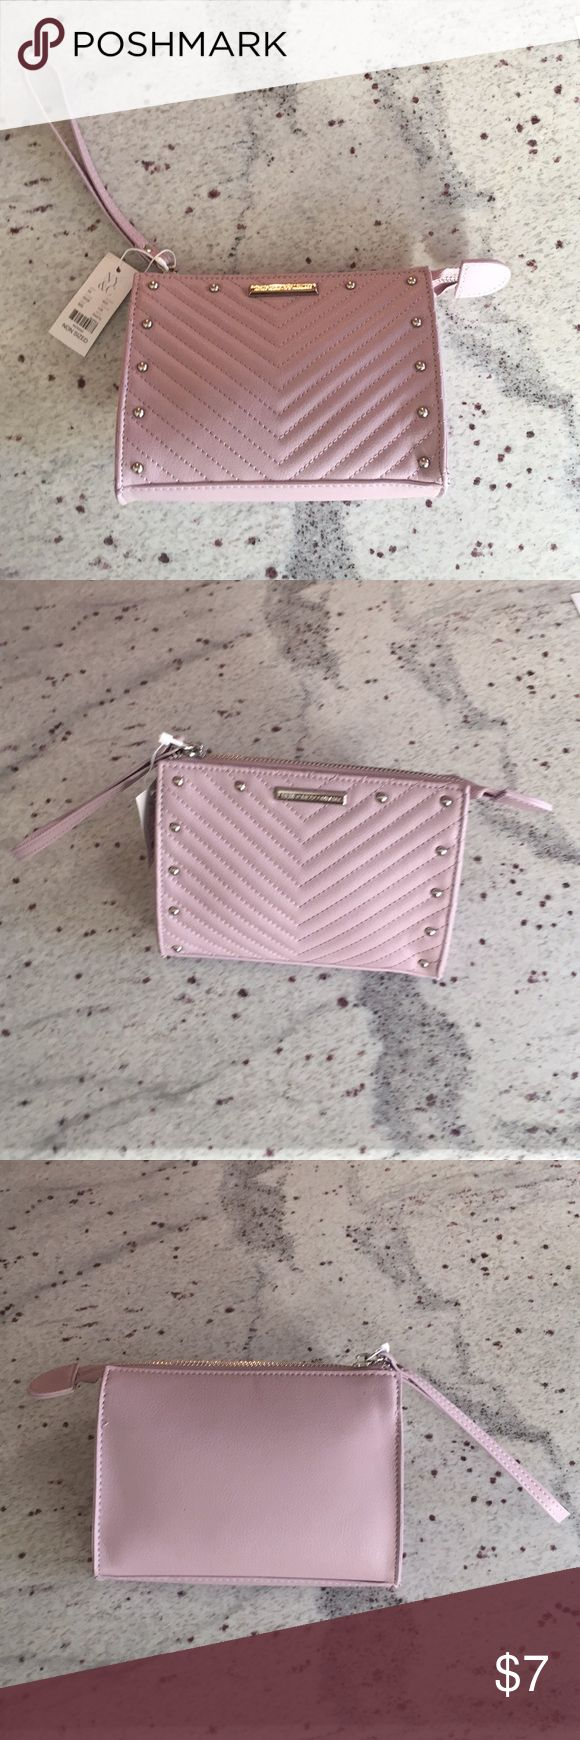 New York and Co. clutch purse New York and Co. lilac clutch purse. NWT. 7 inches long, 5.5 inches tall. Perfect for cell phone, wallet, and keys. Great spring color! New York & Company Bags Clutches & Wristlets